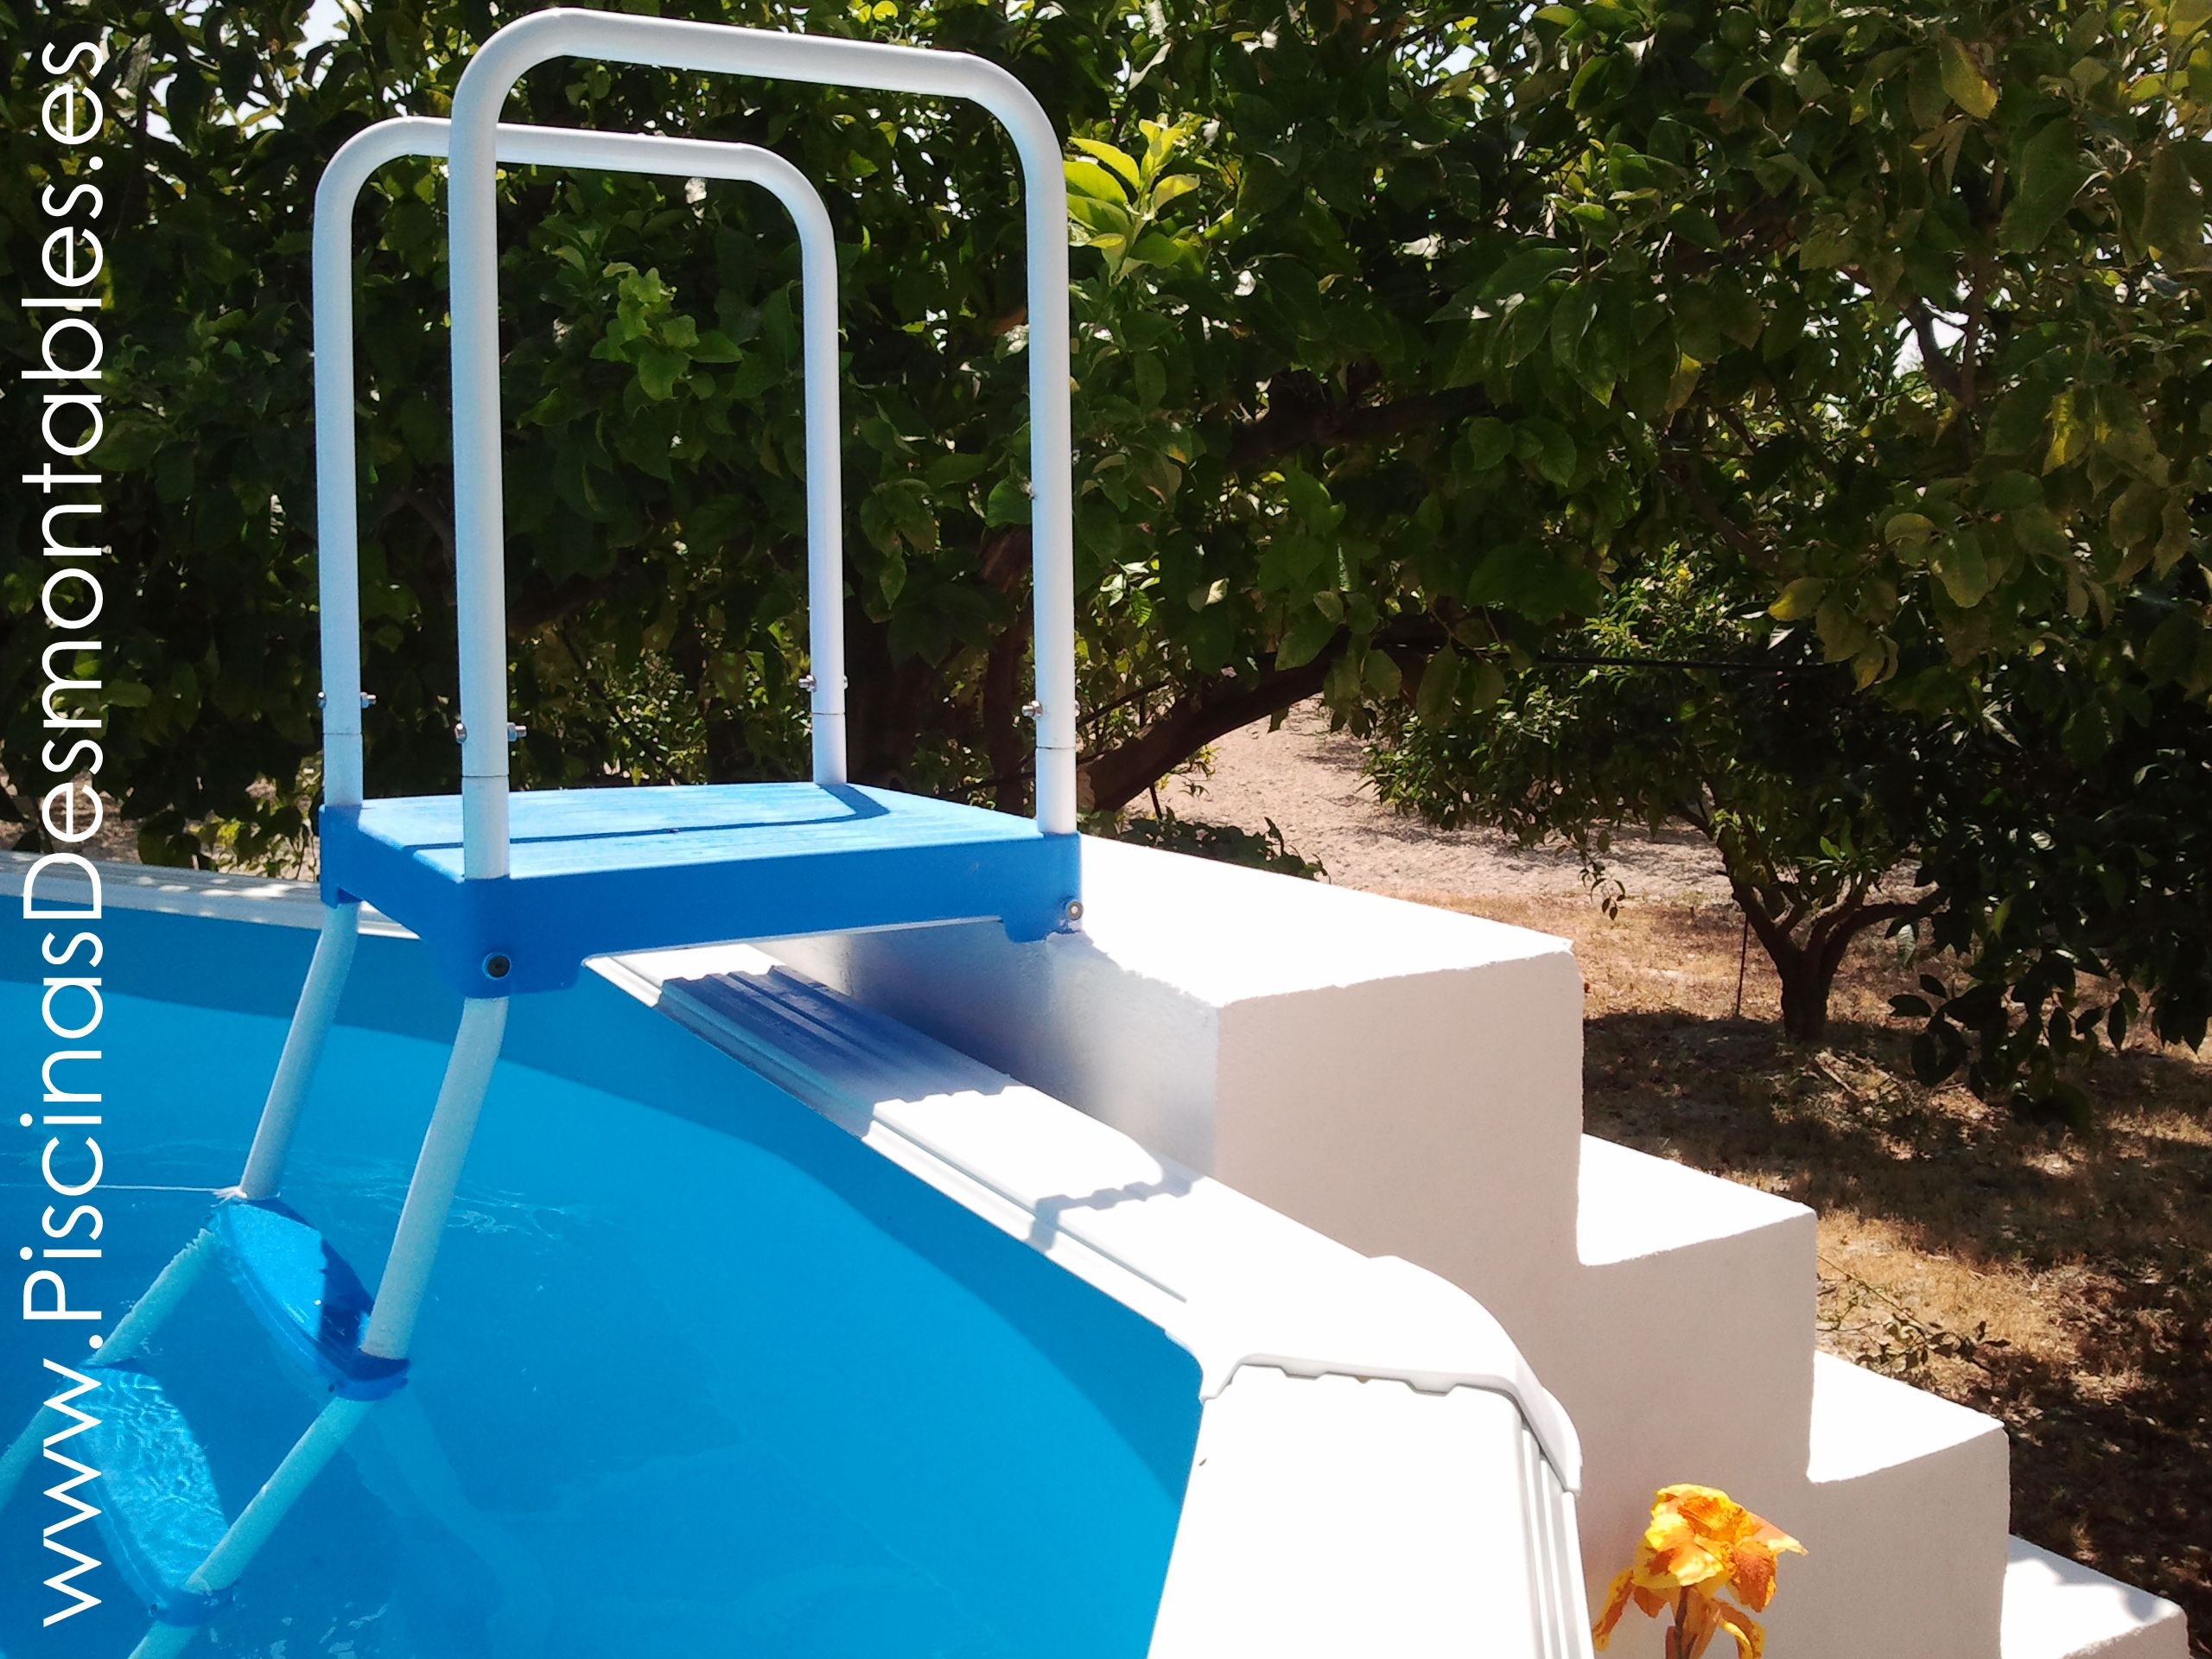 Escalera de piscinas desmontables toi adaptada a una for Piscinas desmontables